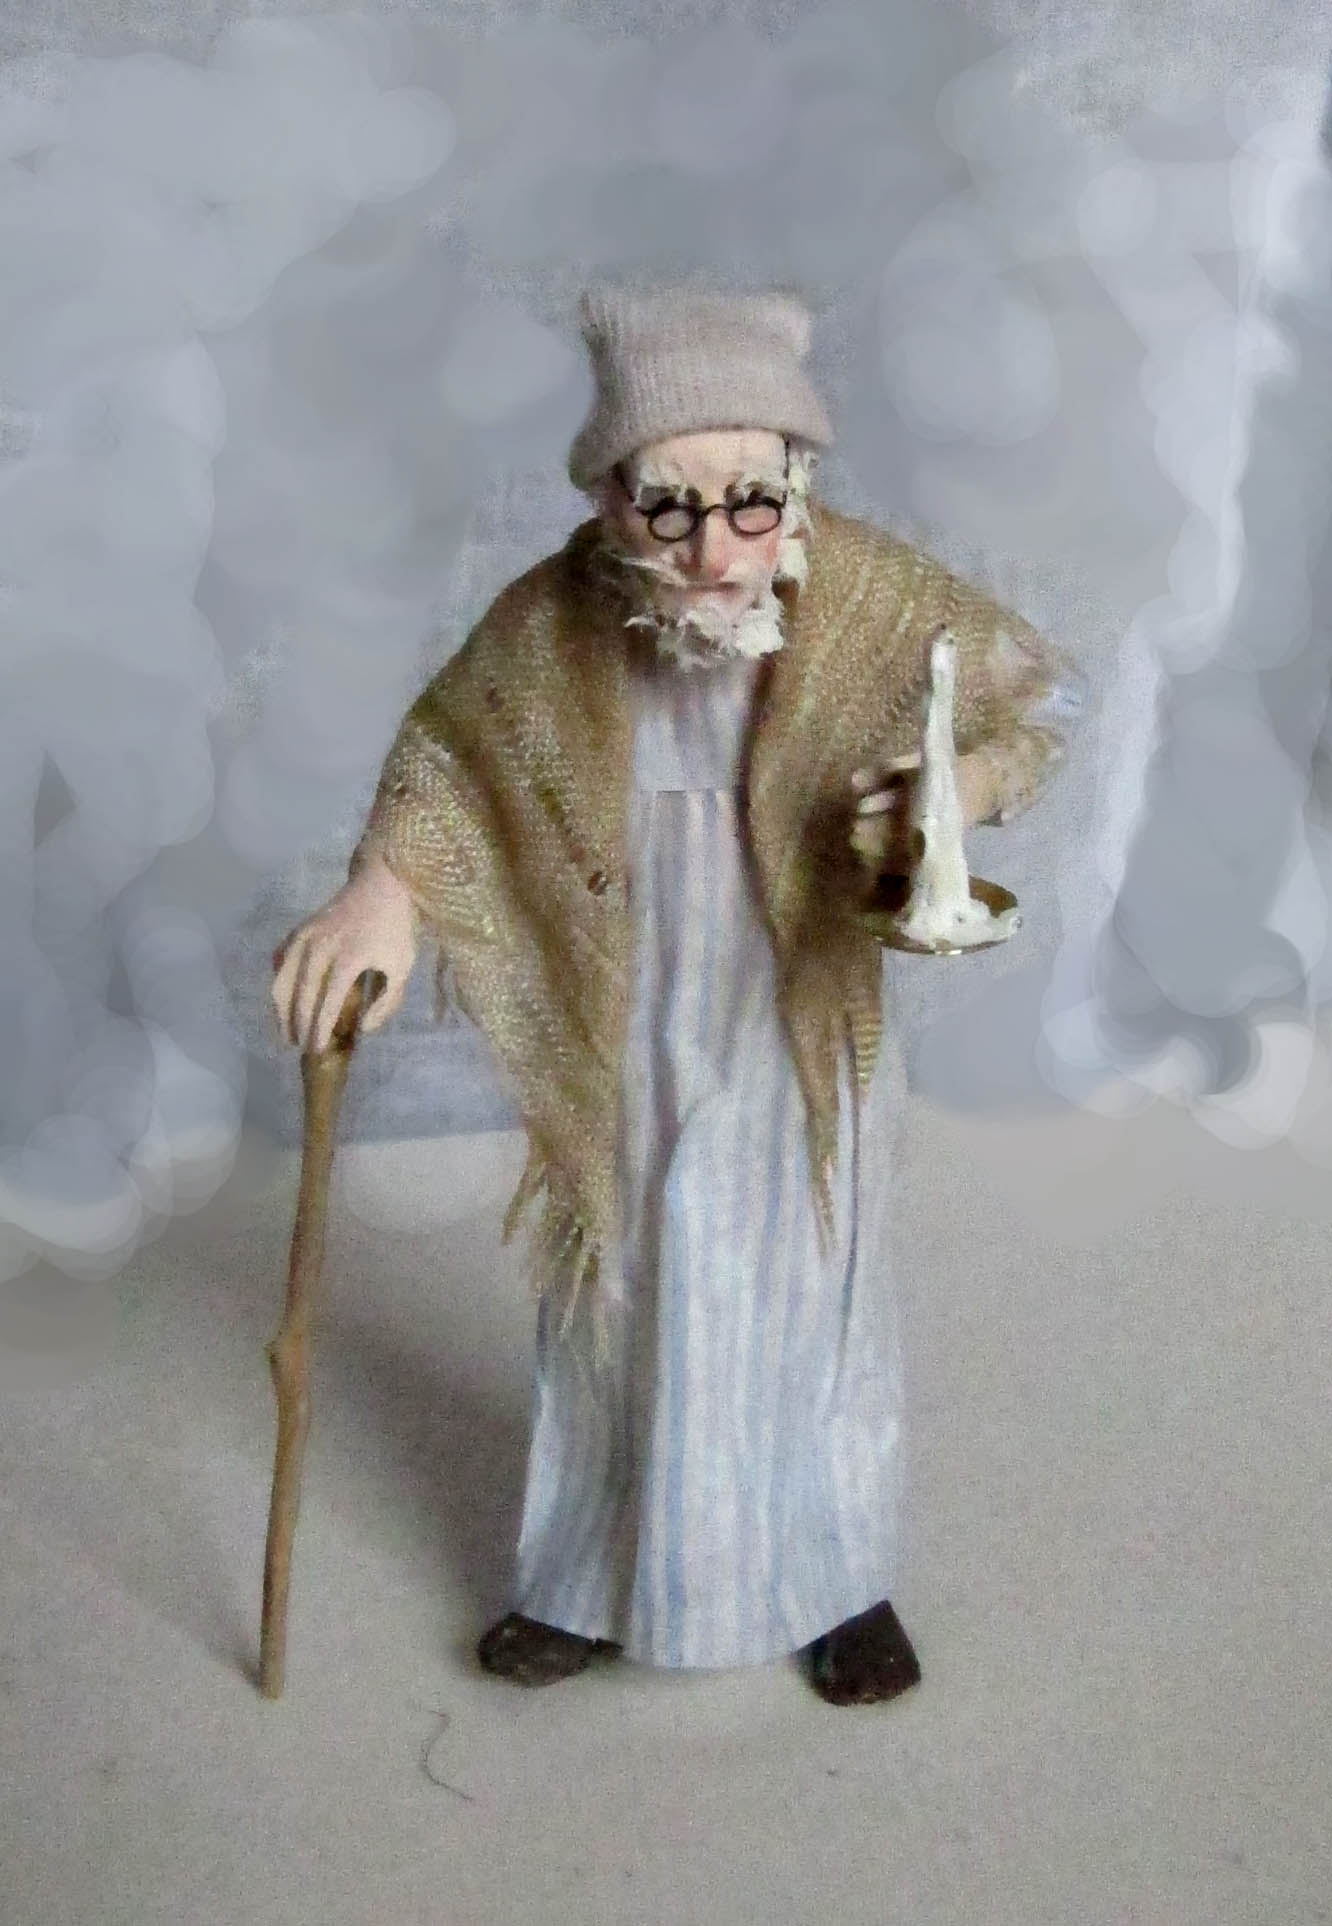 Old man in a nightshirt